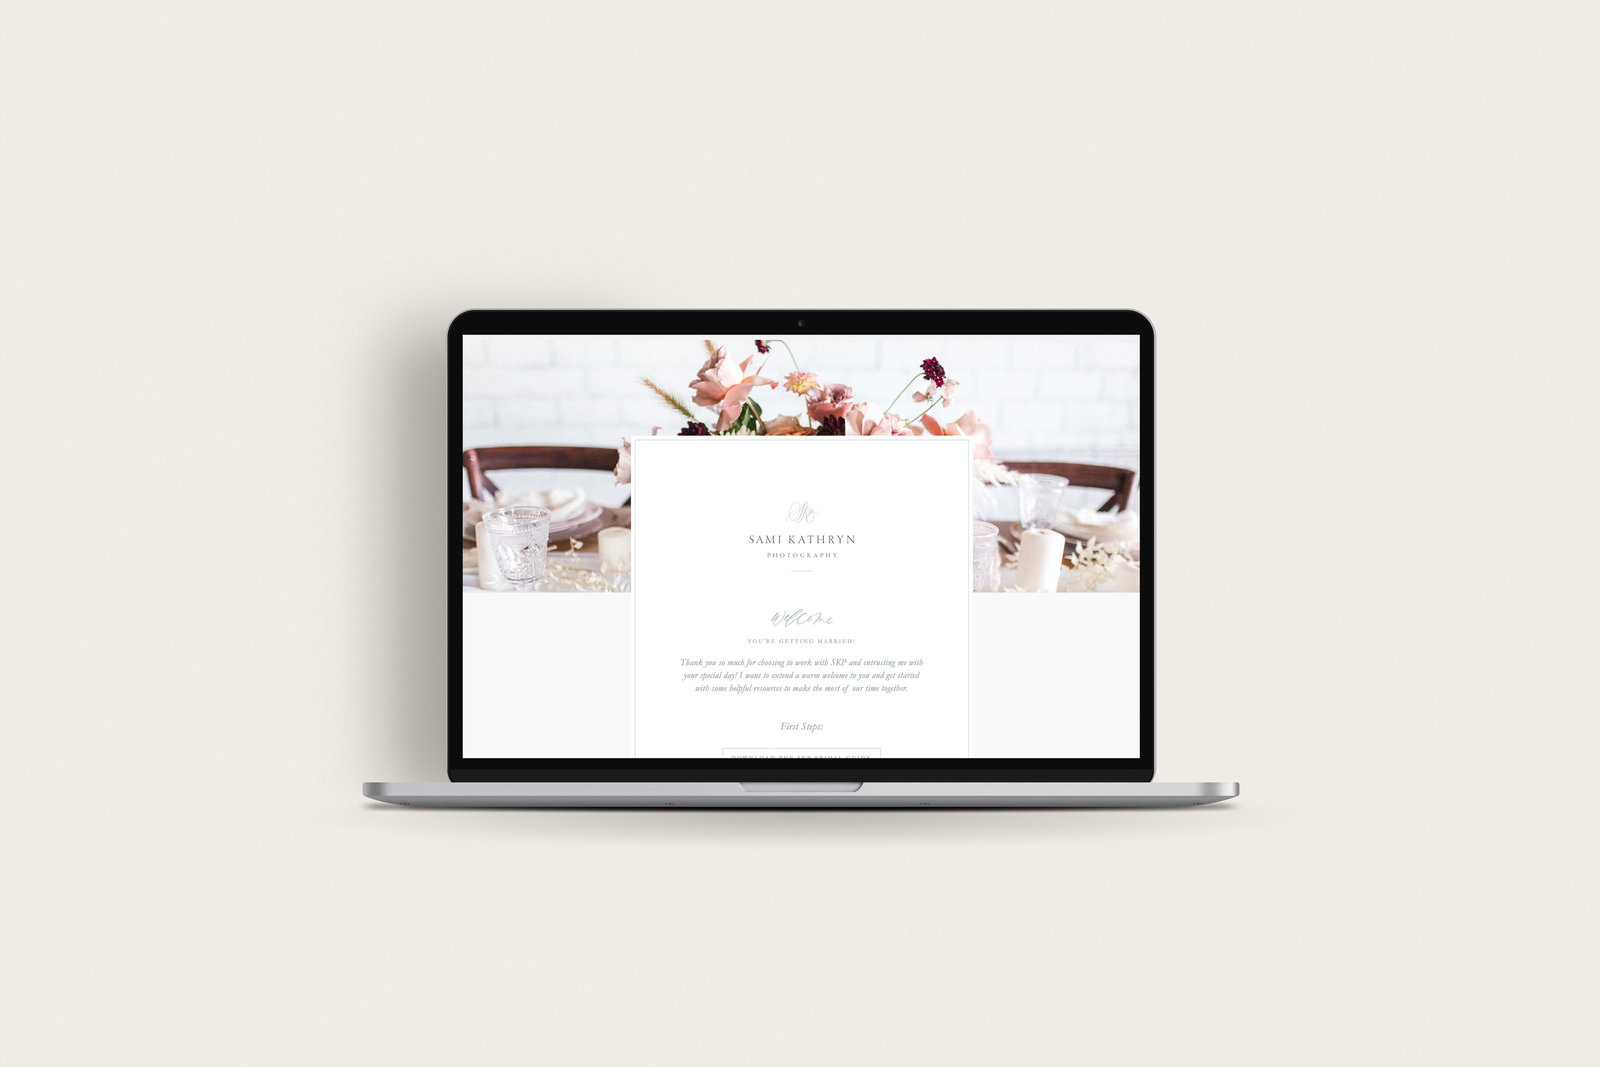 Blog_SamiKathrynPhotography_Mockup_Laptop